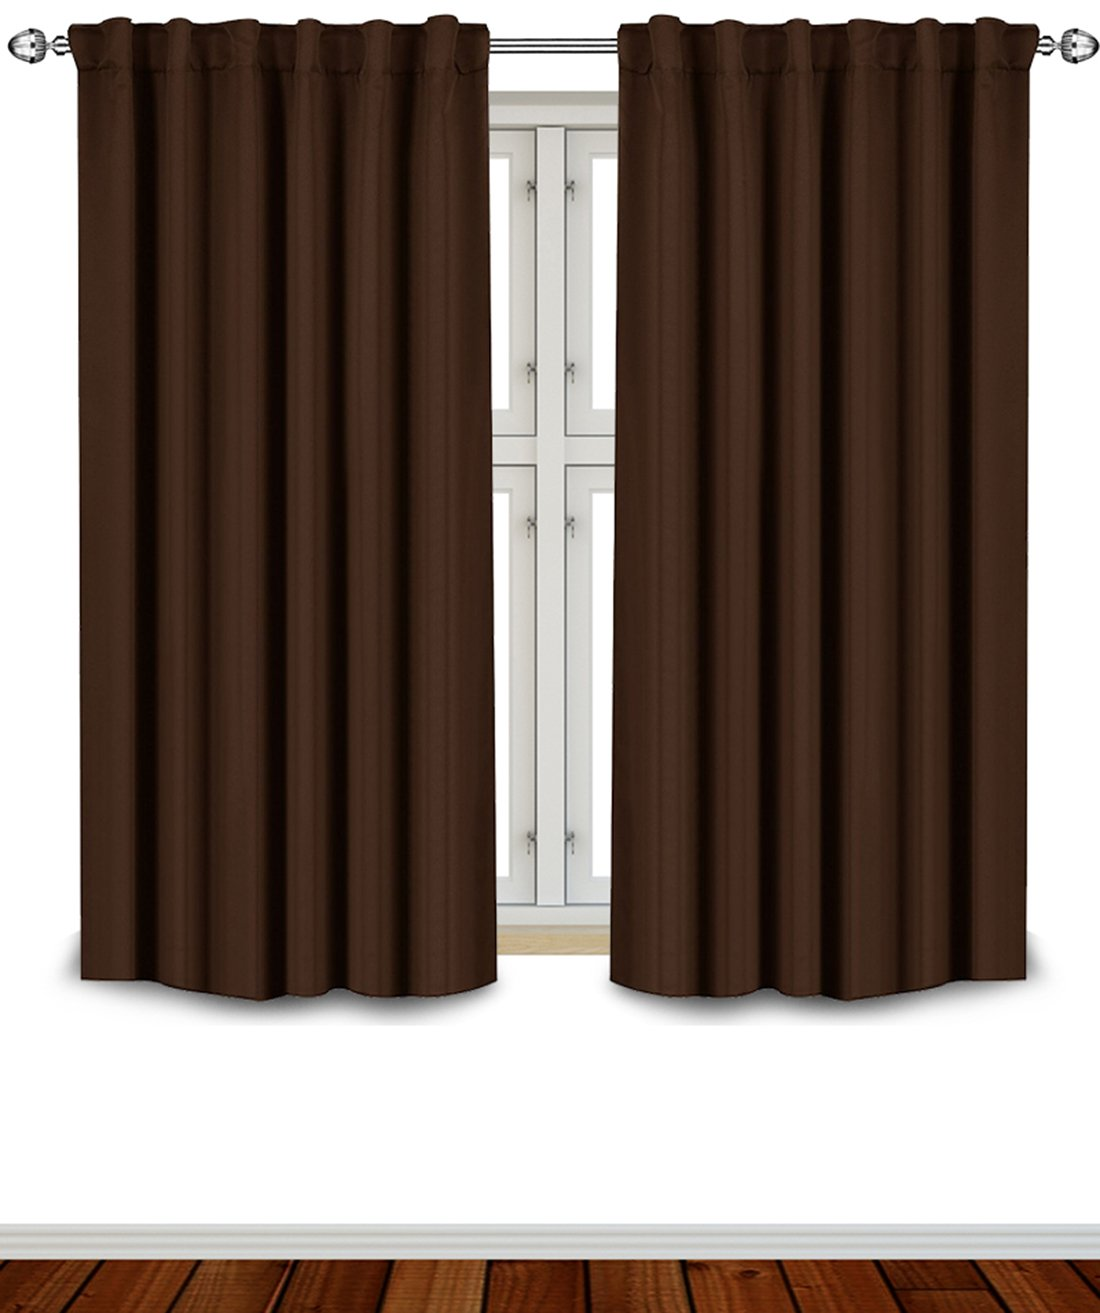 curtains brown saving zoom loading classic style two polyester panels energy curtain p buy